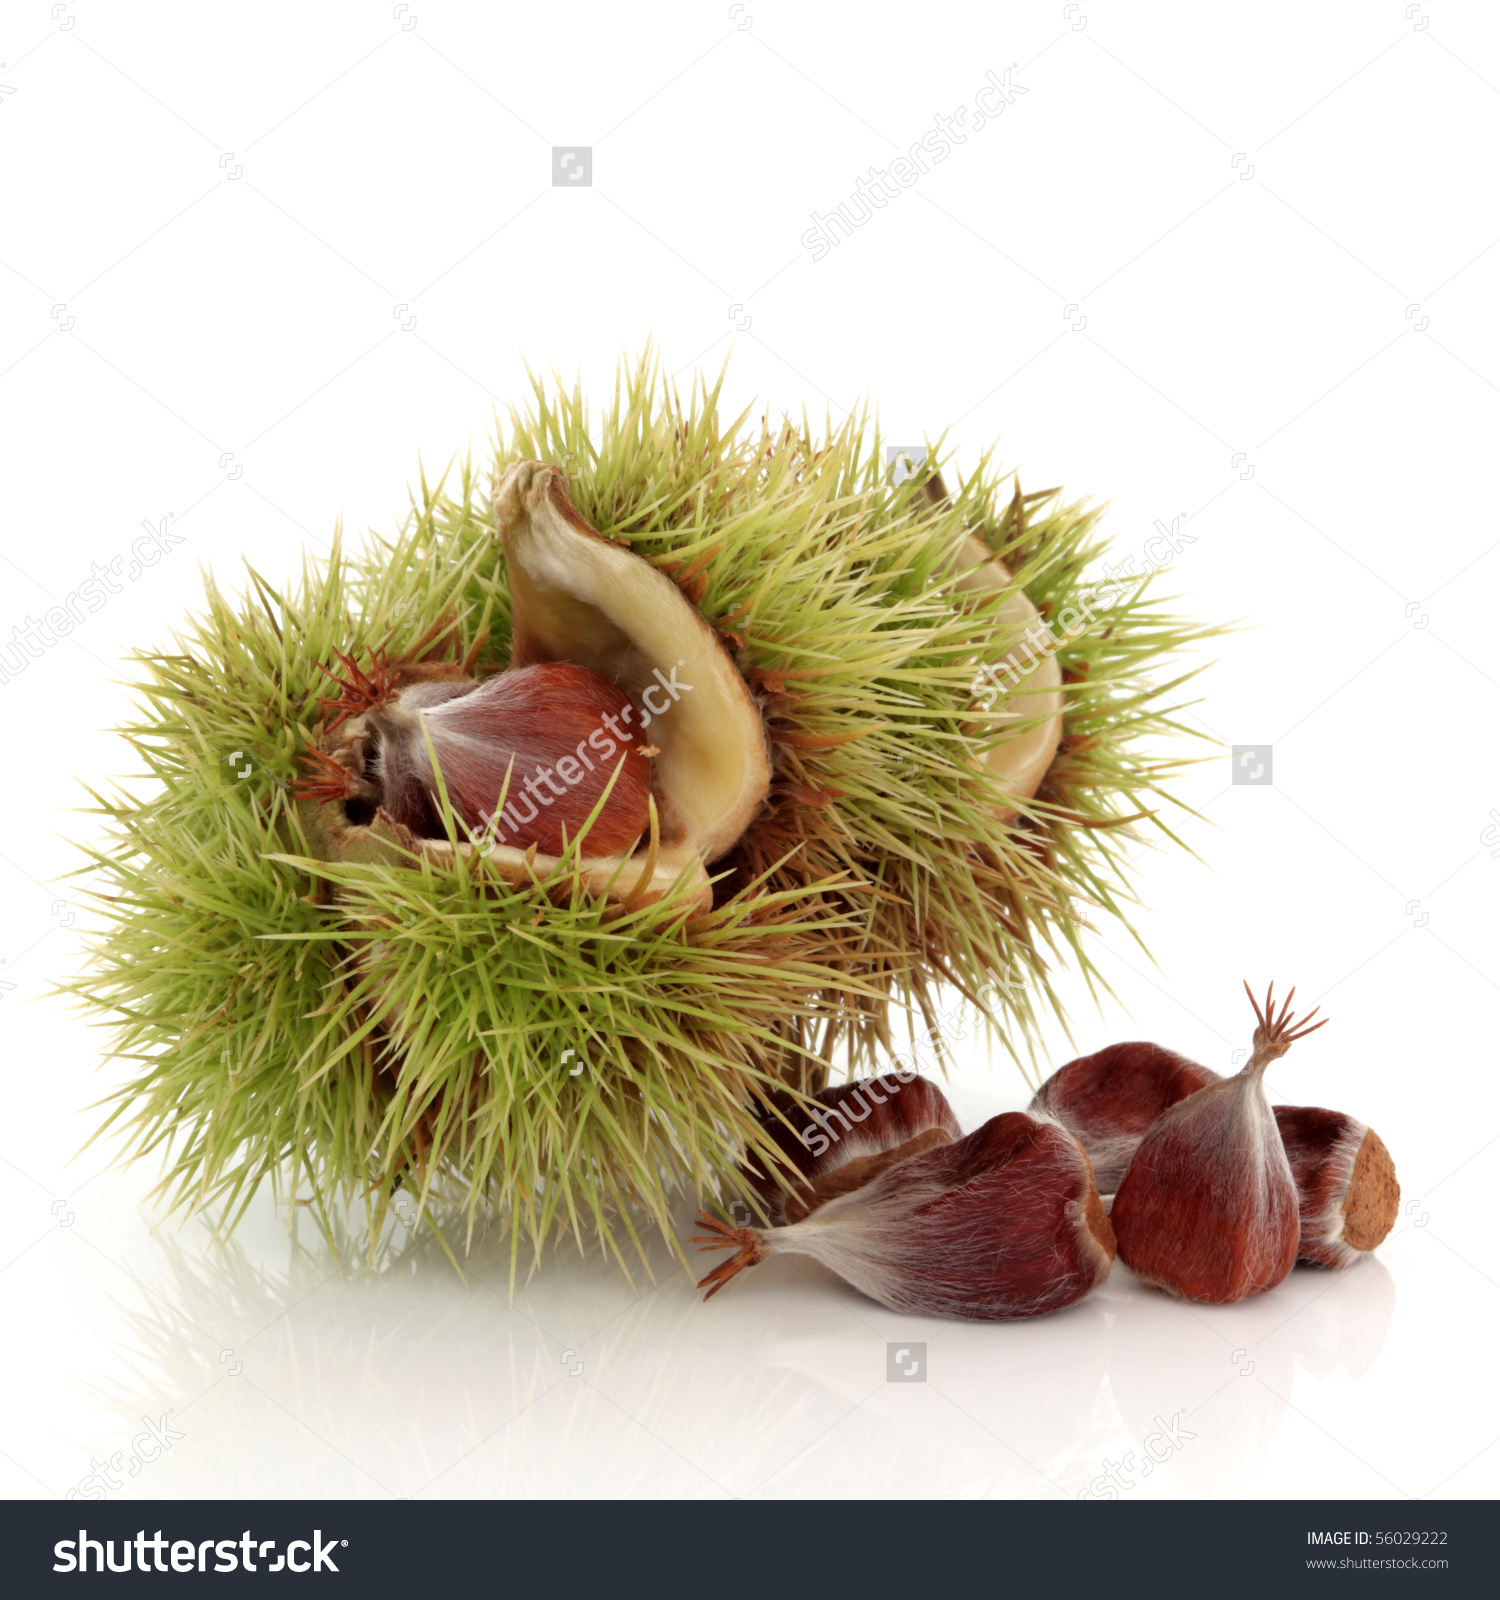 Beech Nut Husk Nuts Scattered Isolated Stock Photo 56029222.